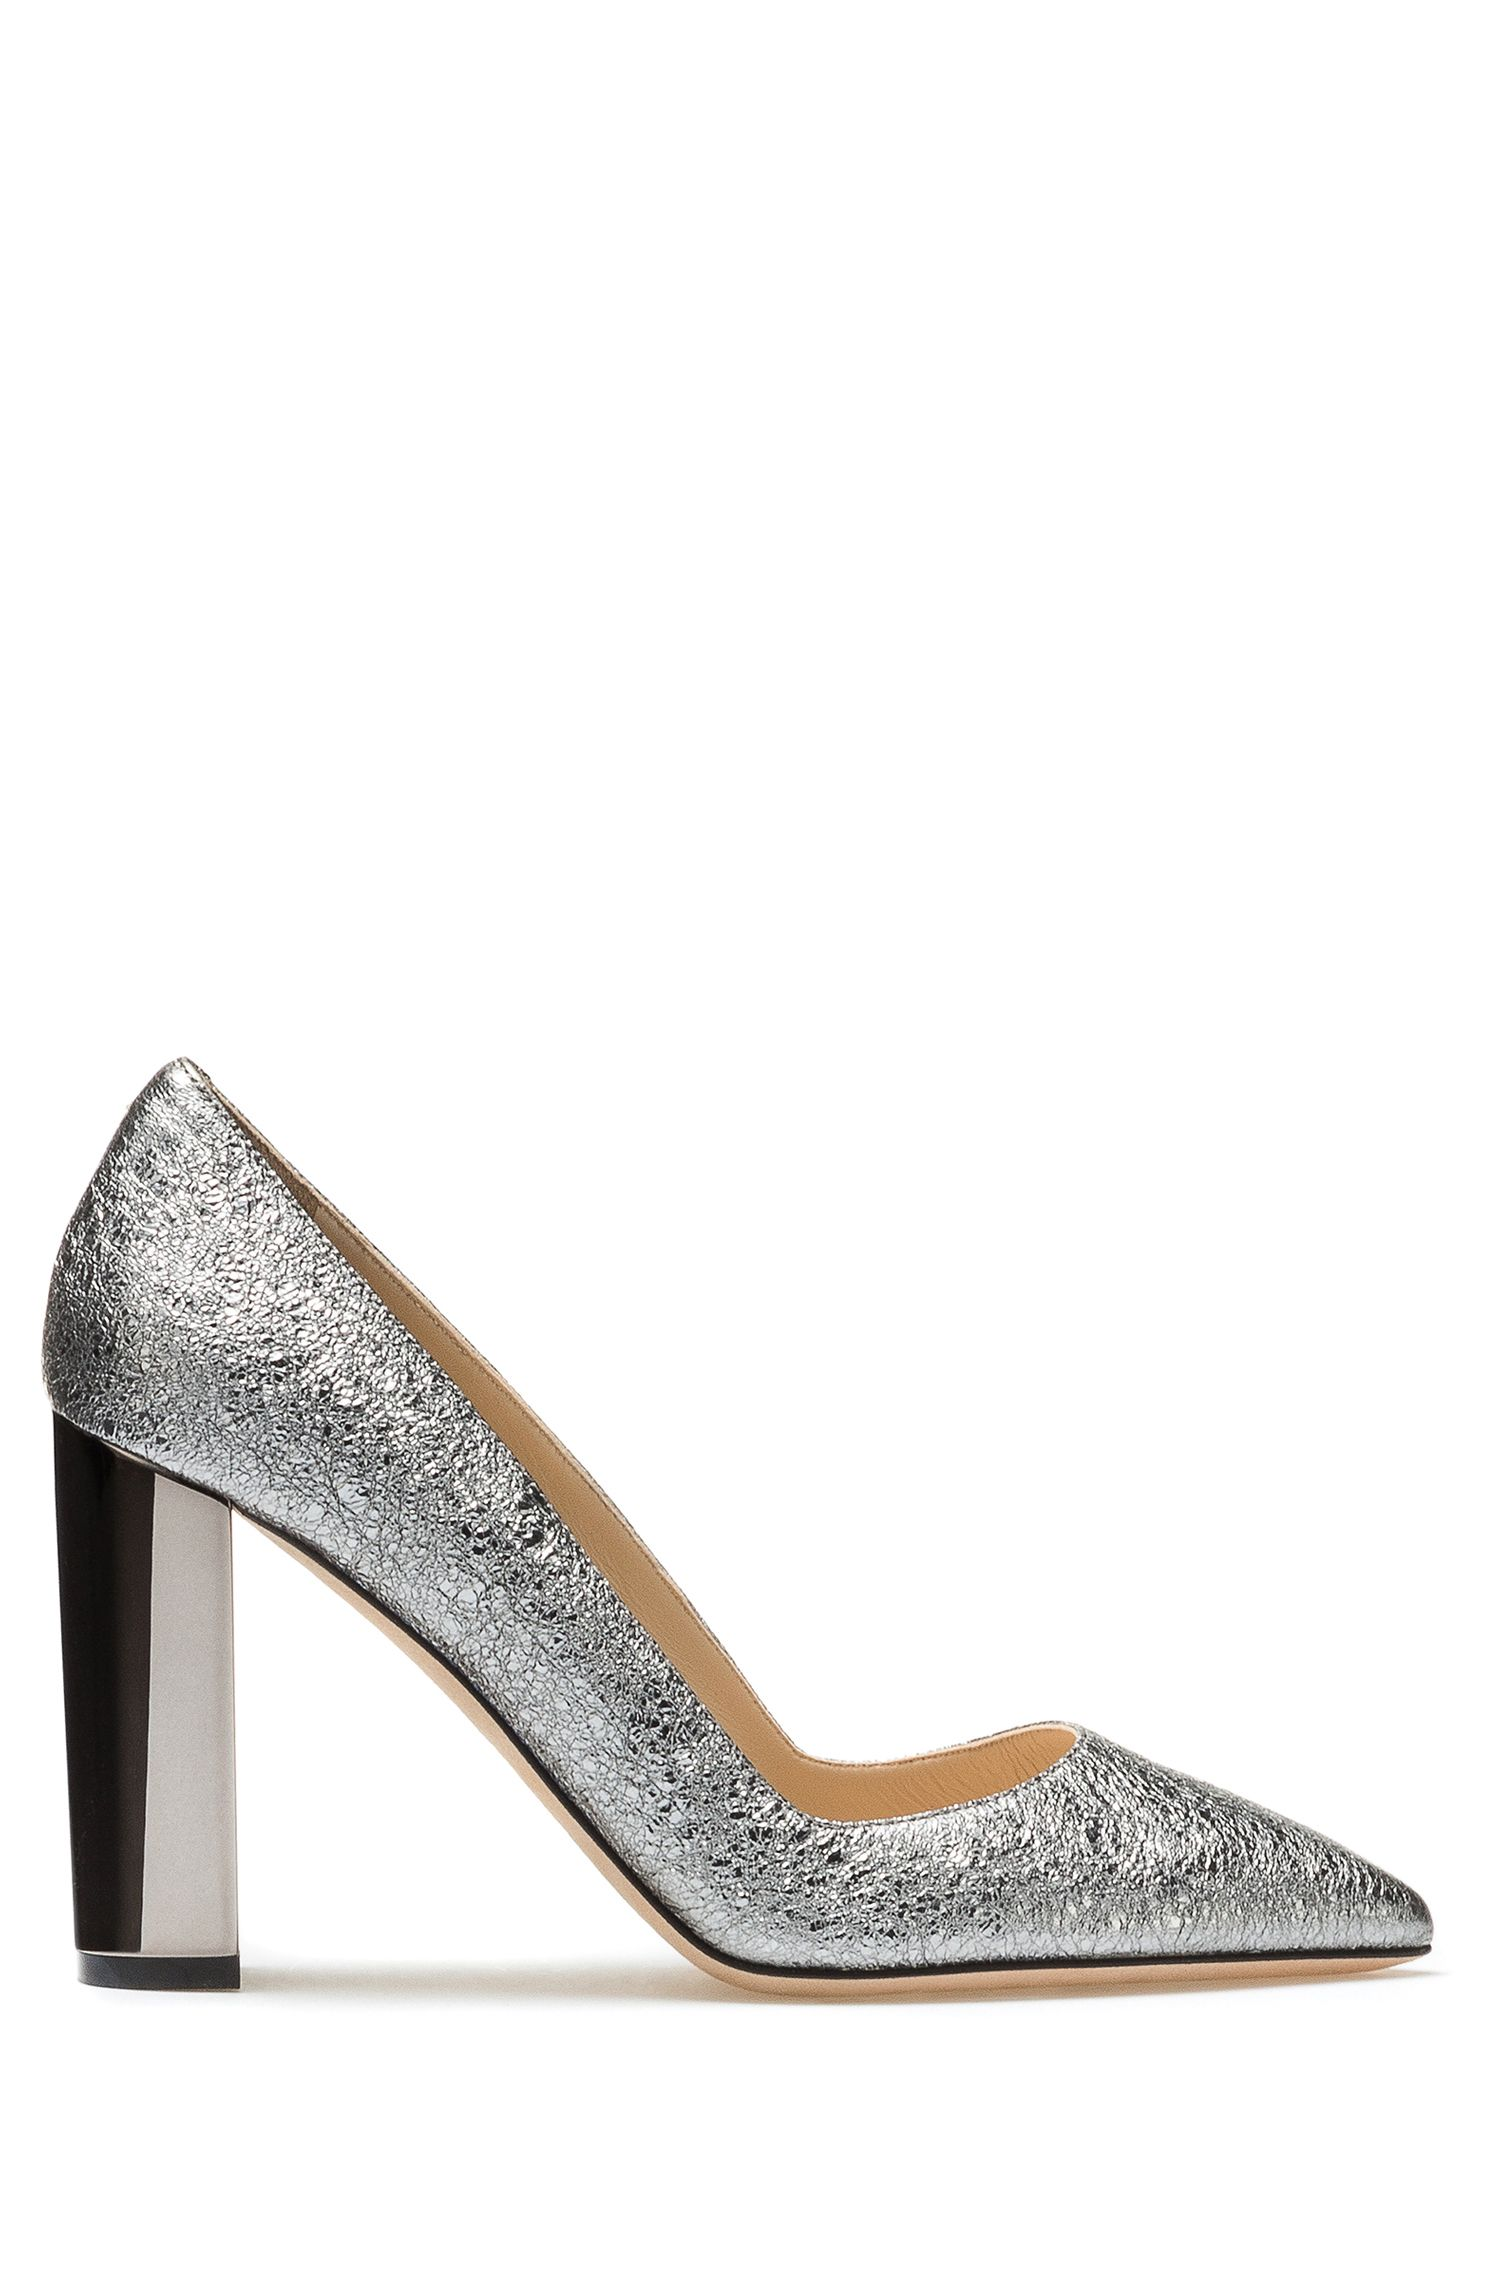 Metallic Pump | Mayfair Pump L